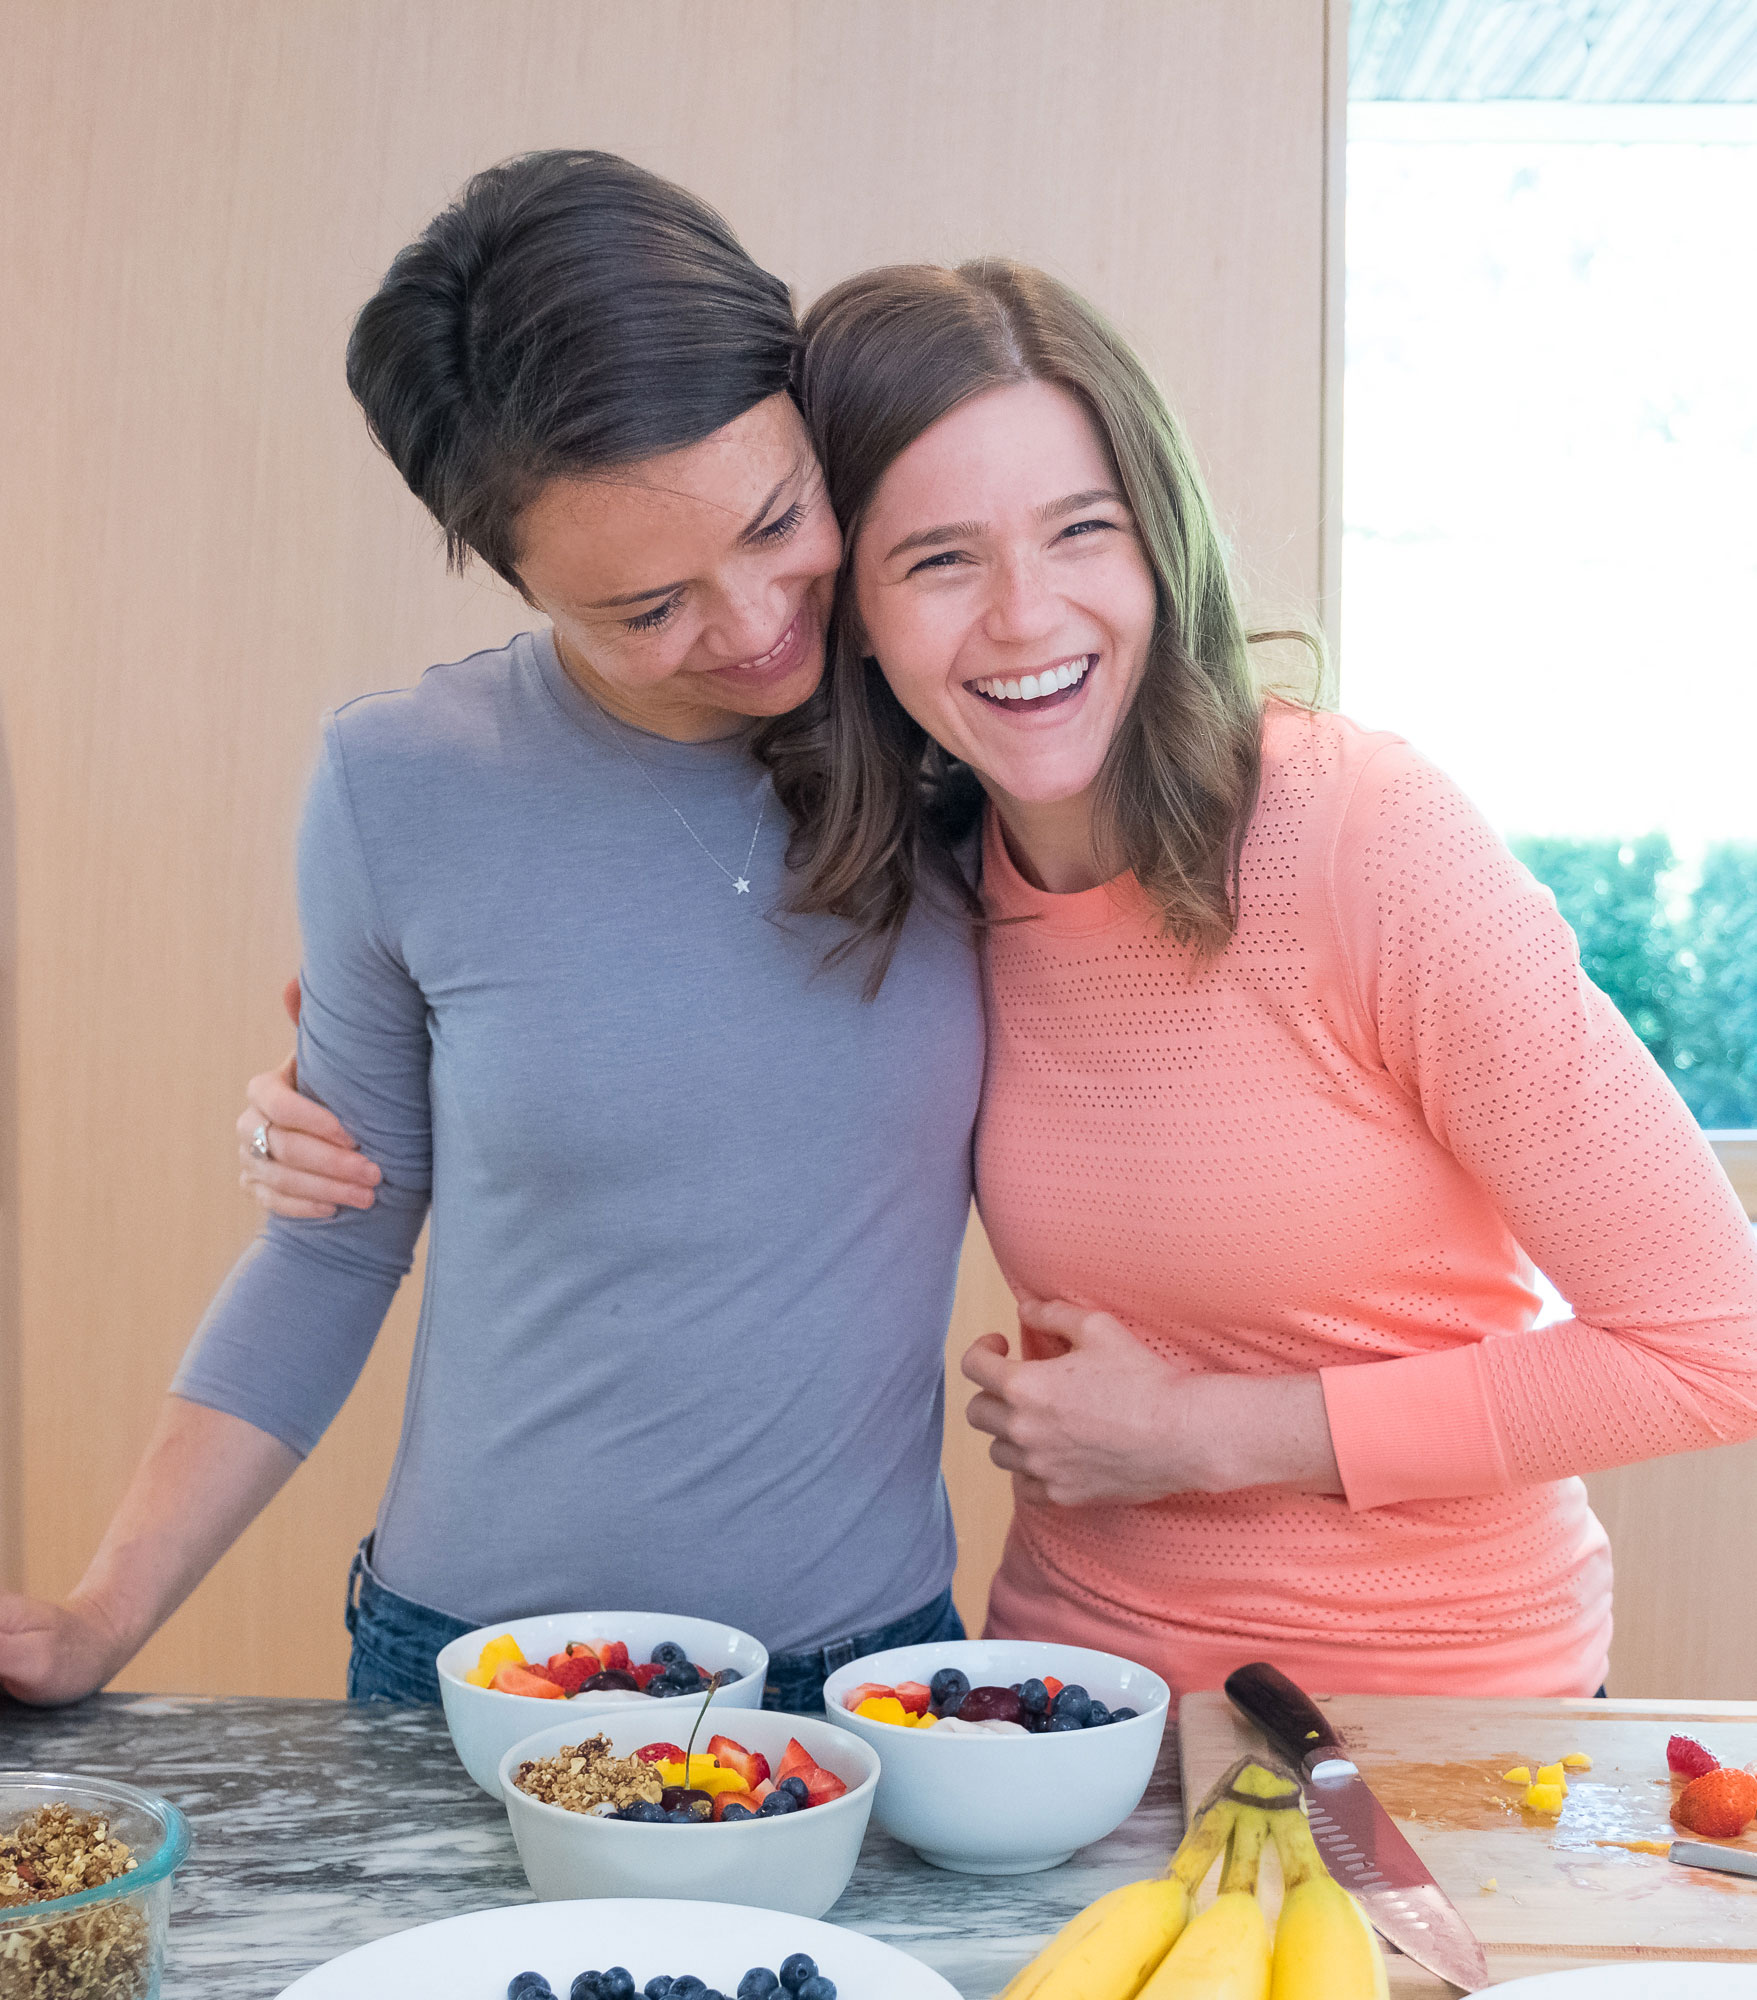 Nikki and Zuzana in the kitchen creating plant-based recipes